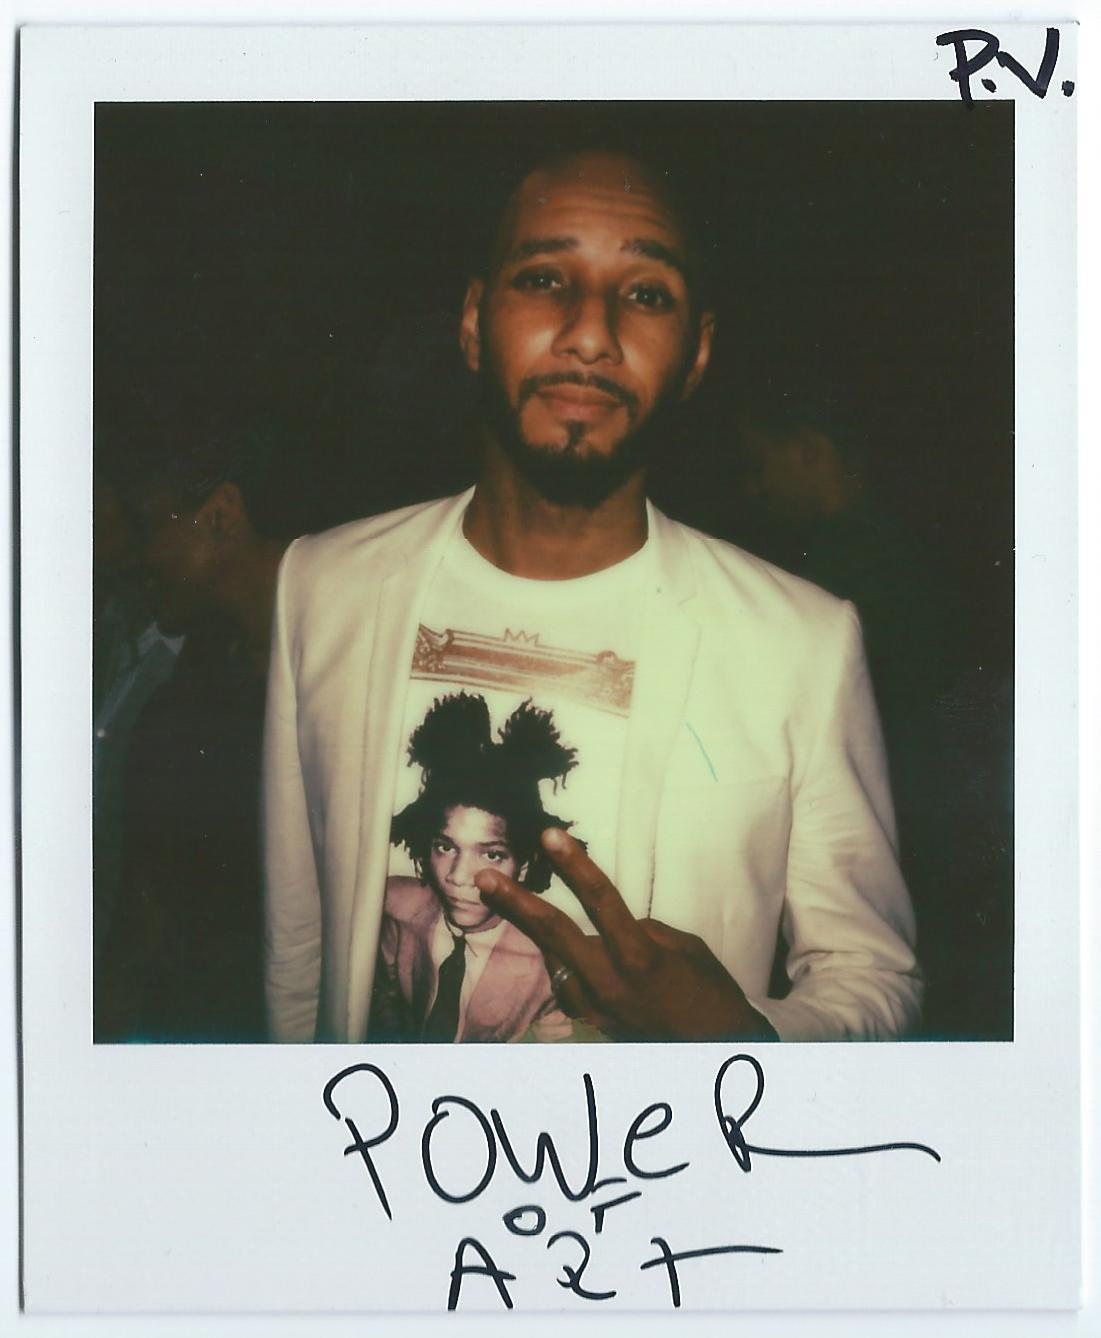 """POWER OF ART"" - SWIZZ BEATZ"